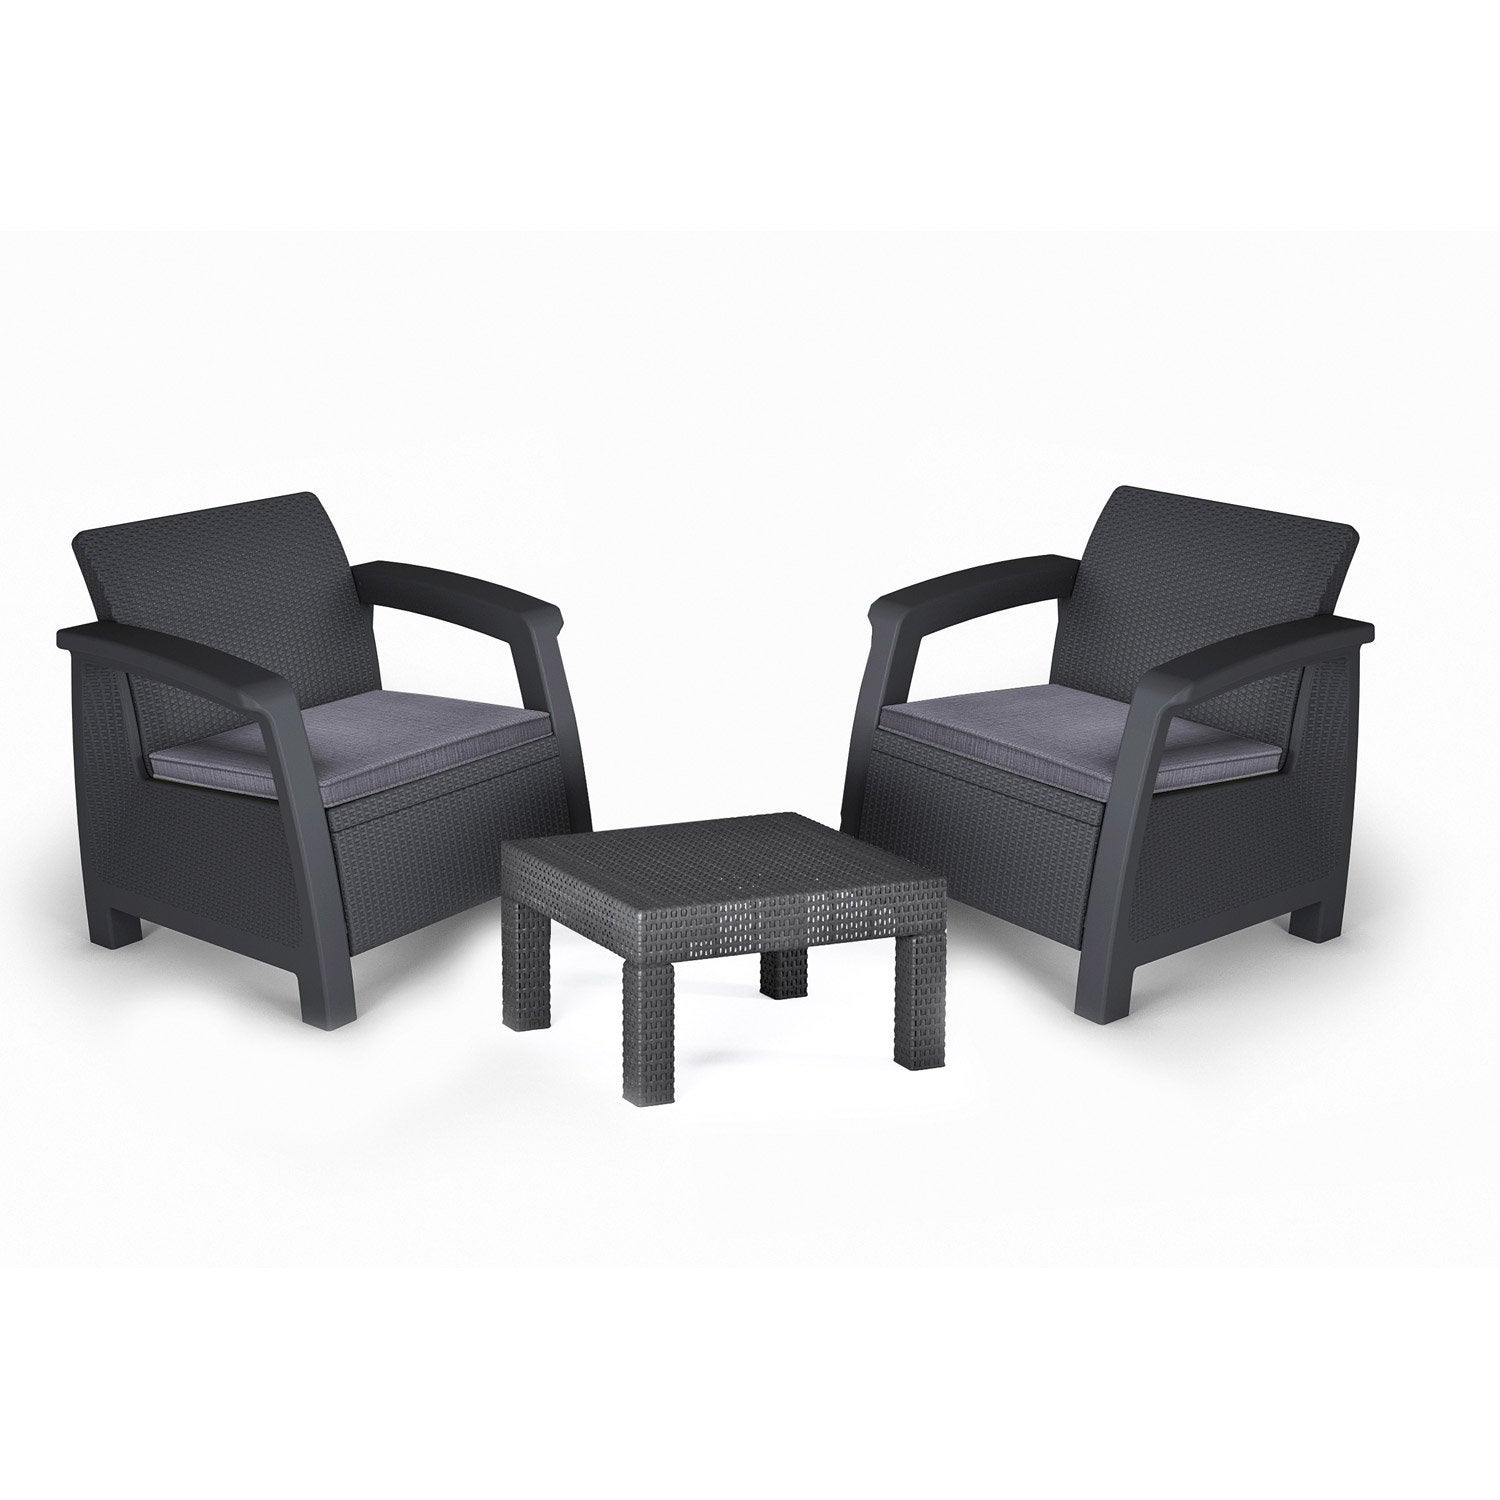 Salon De Jardin Bahamas R Sine Inject E Anthracite Table 2 Fauteuils Leroy Merlin